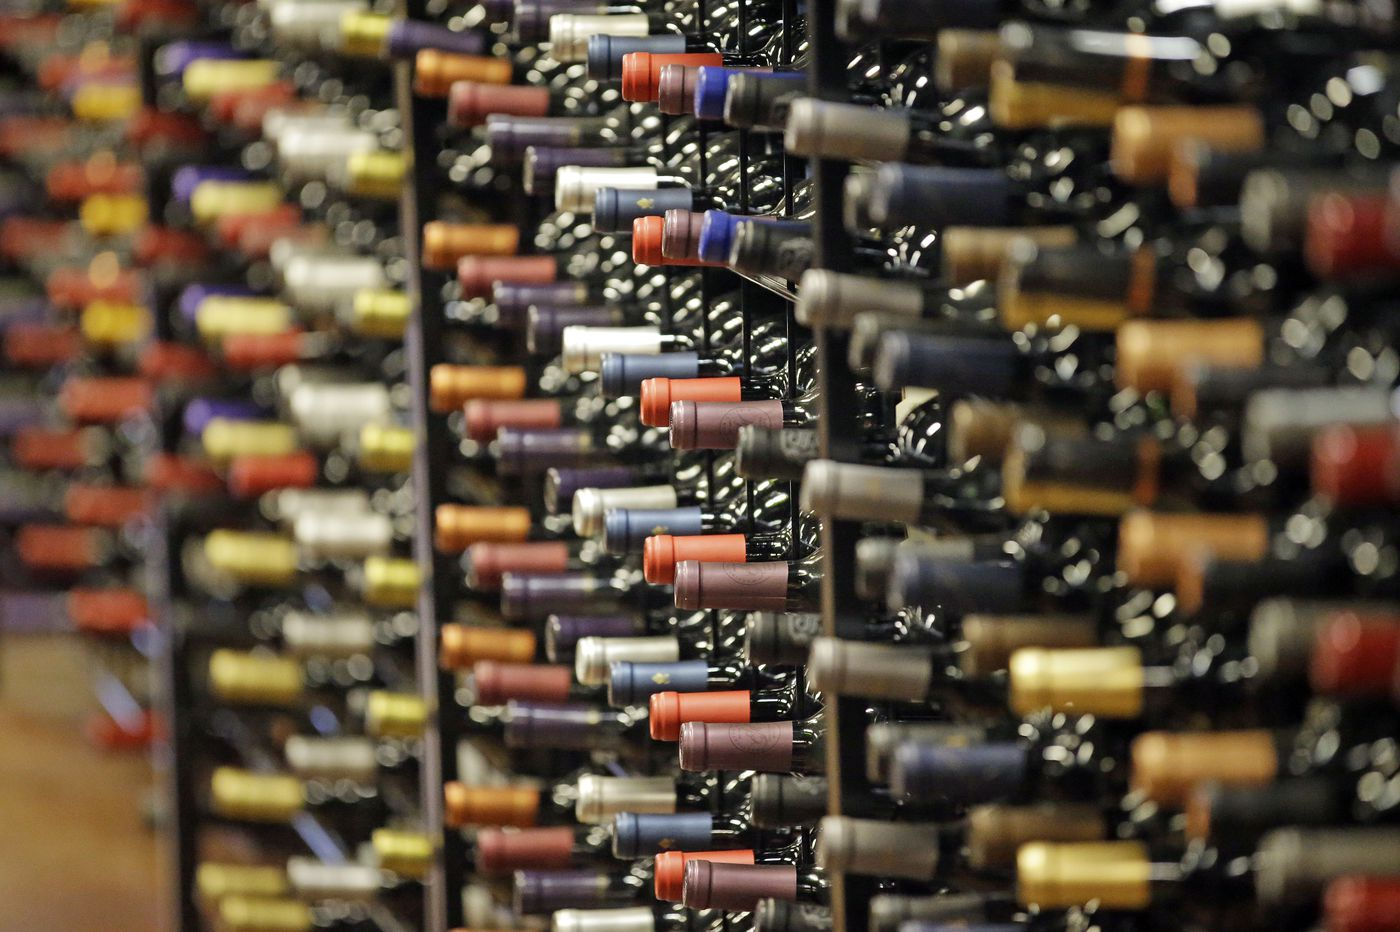 Here's why the cheapest wines are sweet, not dry